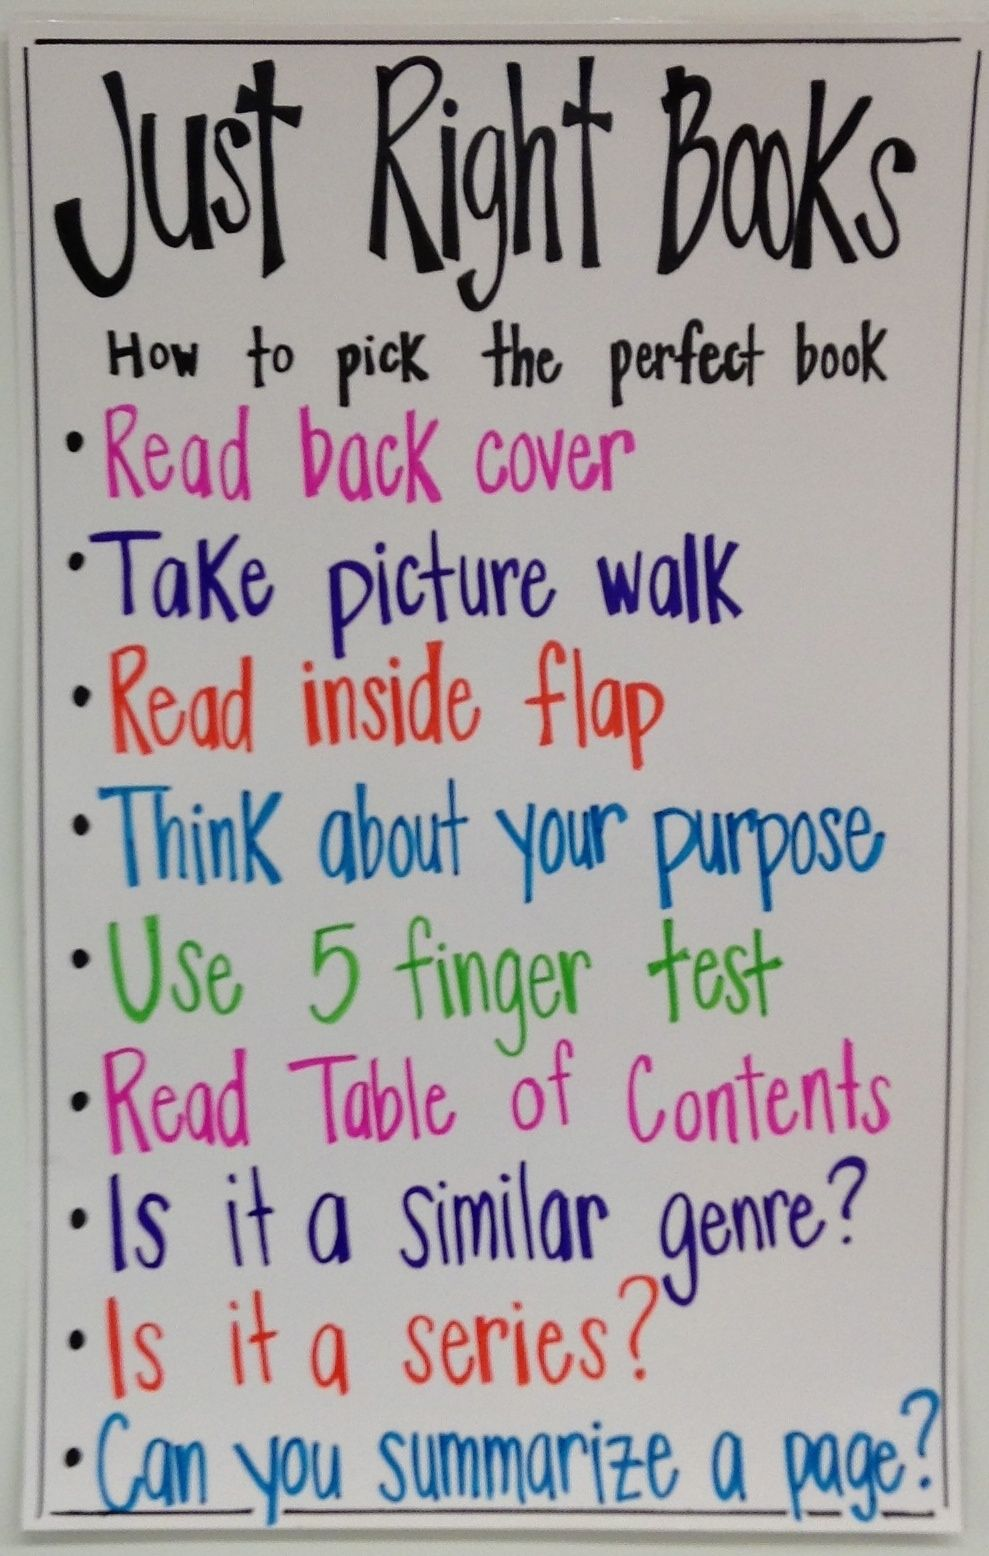 Students often find it difficult to remember check  book before taking out of the library so they need constant reminders about how choose also rh pinterest